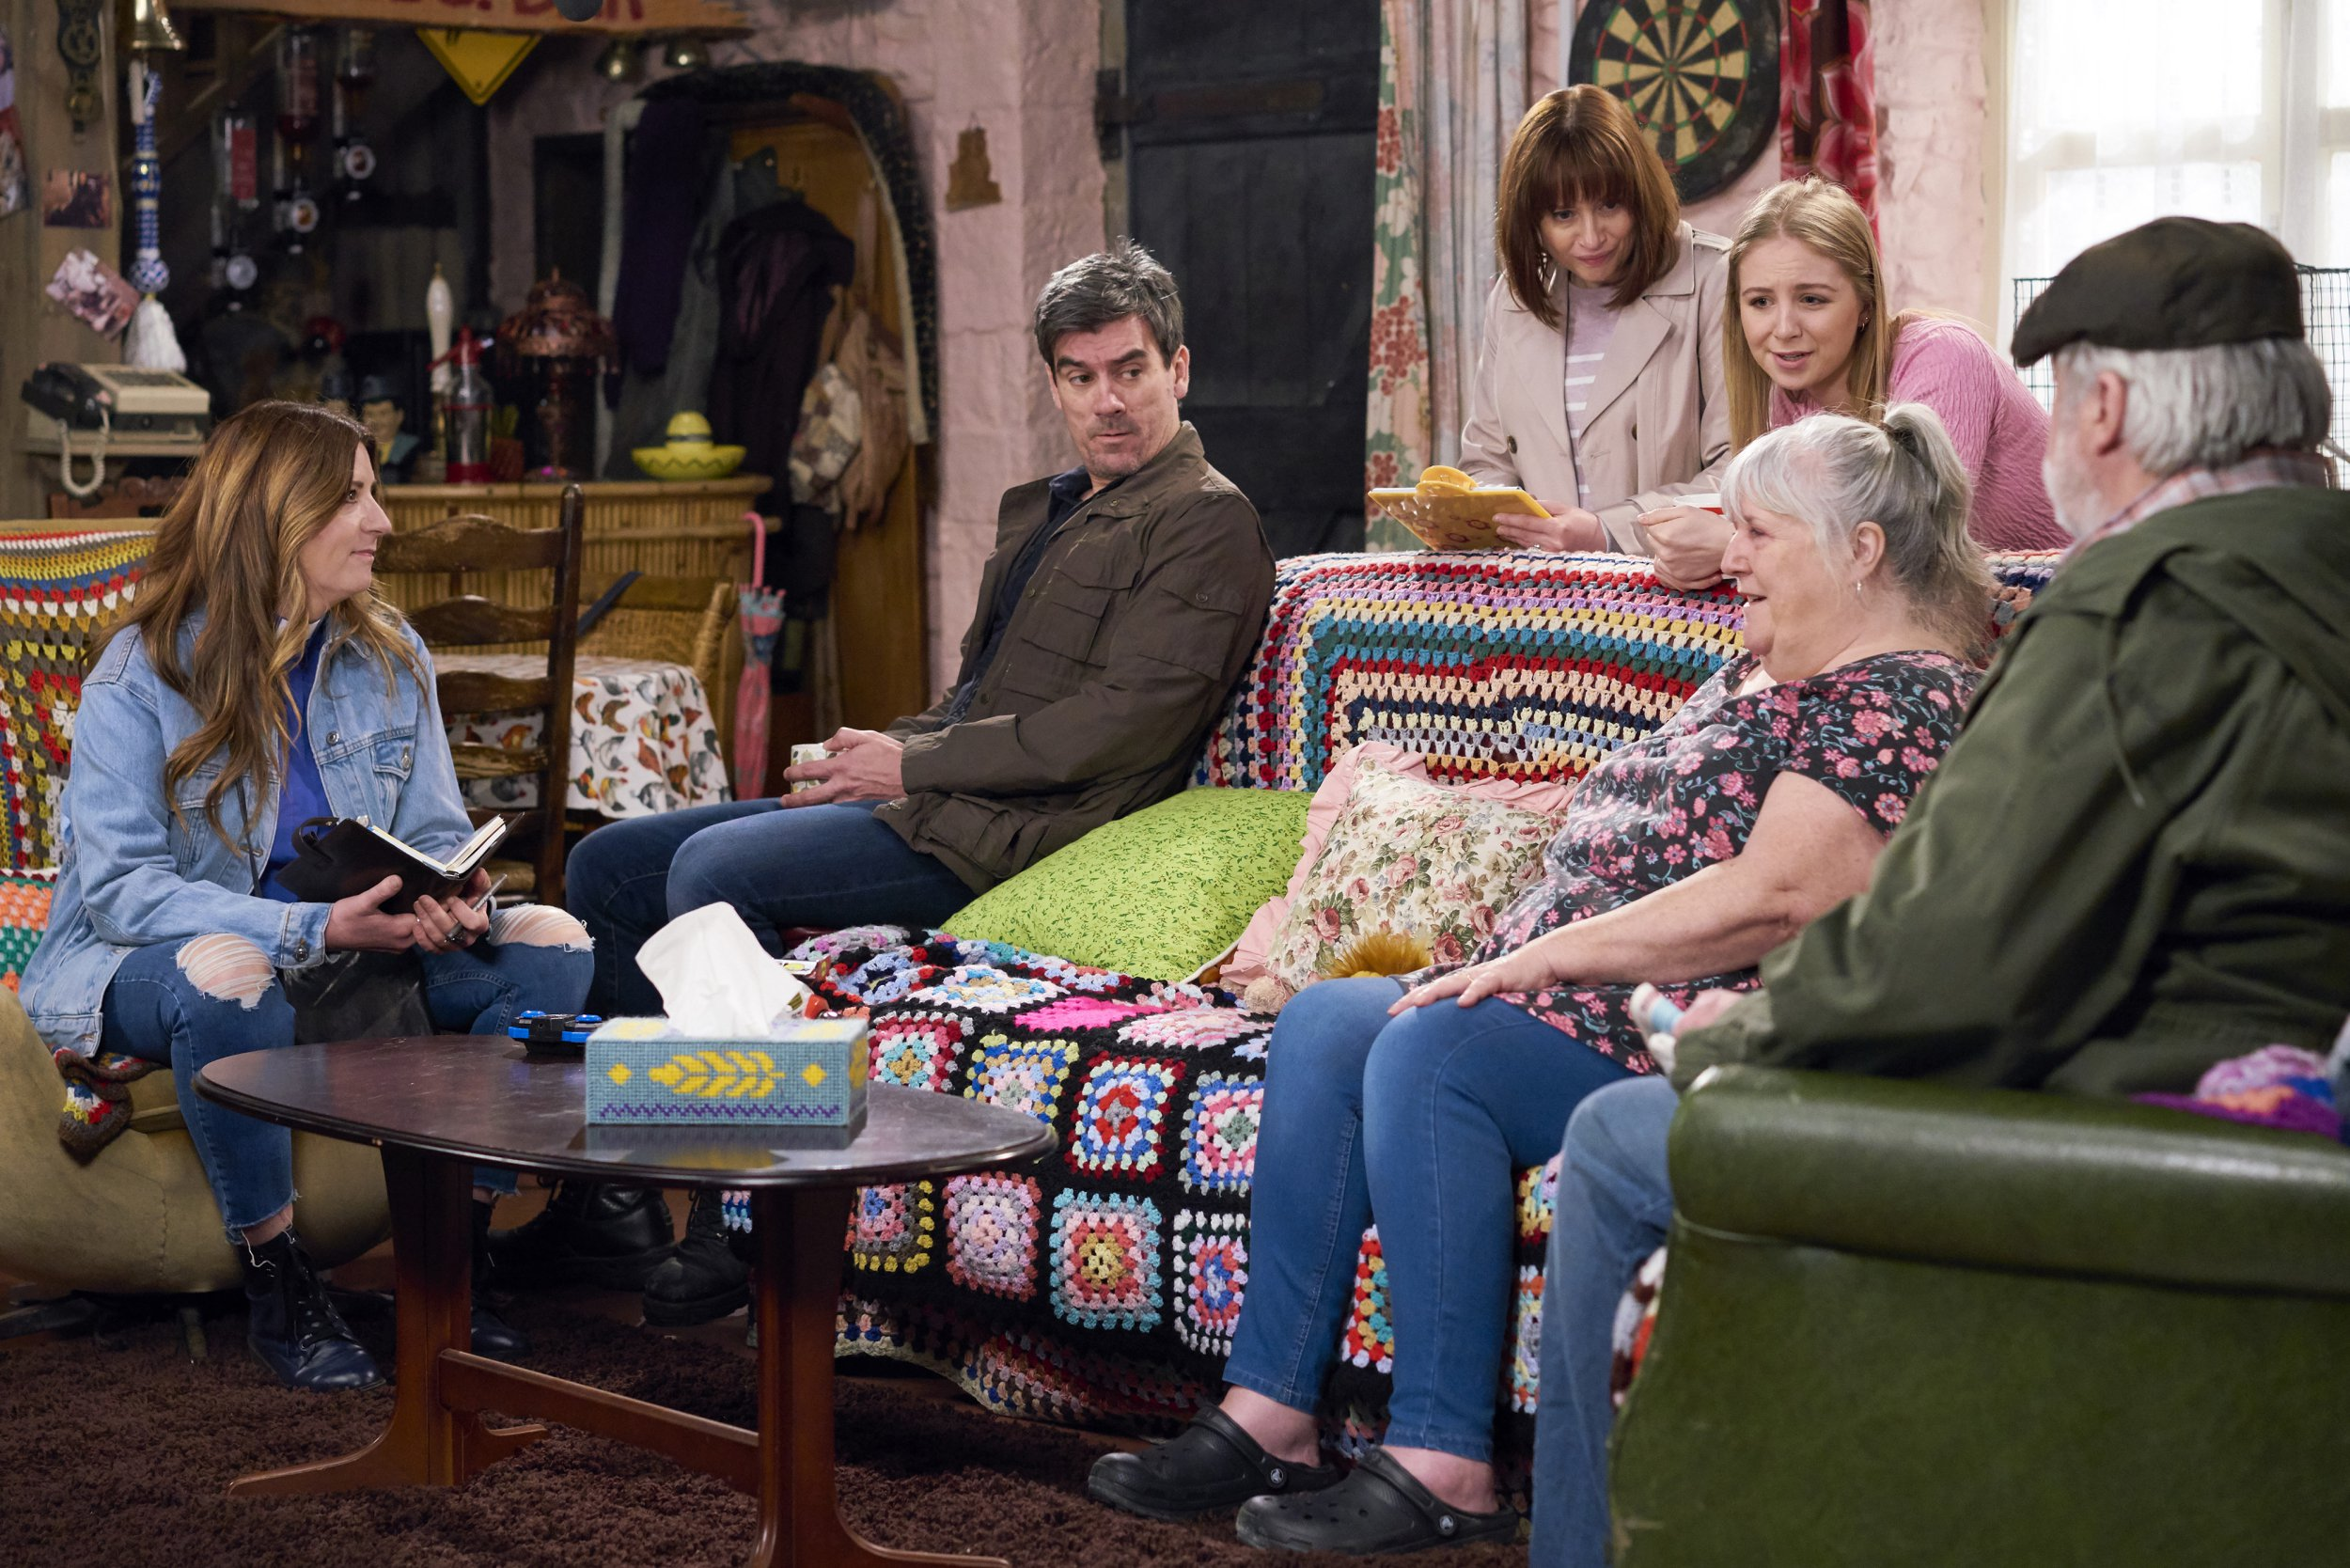 Emmerdale spoilers: Steve Halliwell confirms whether Zak Dingle will find love again after Lisa